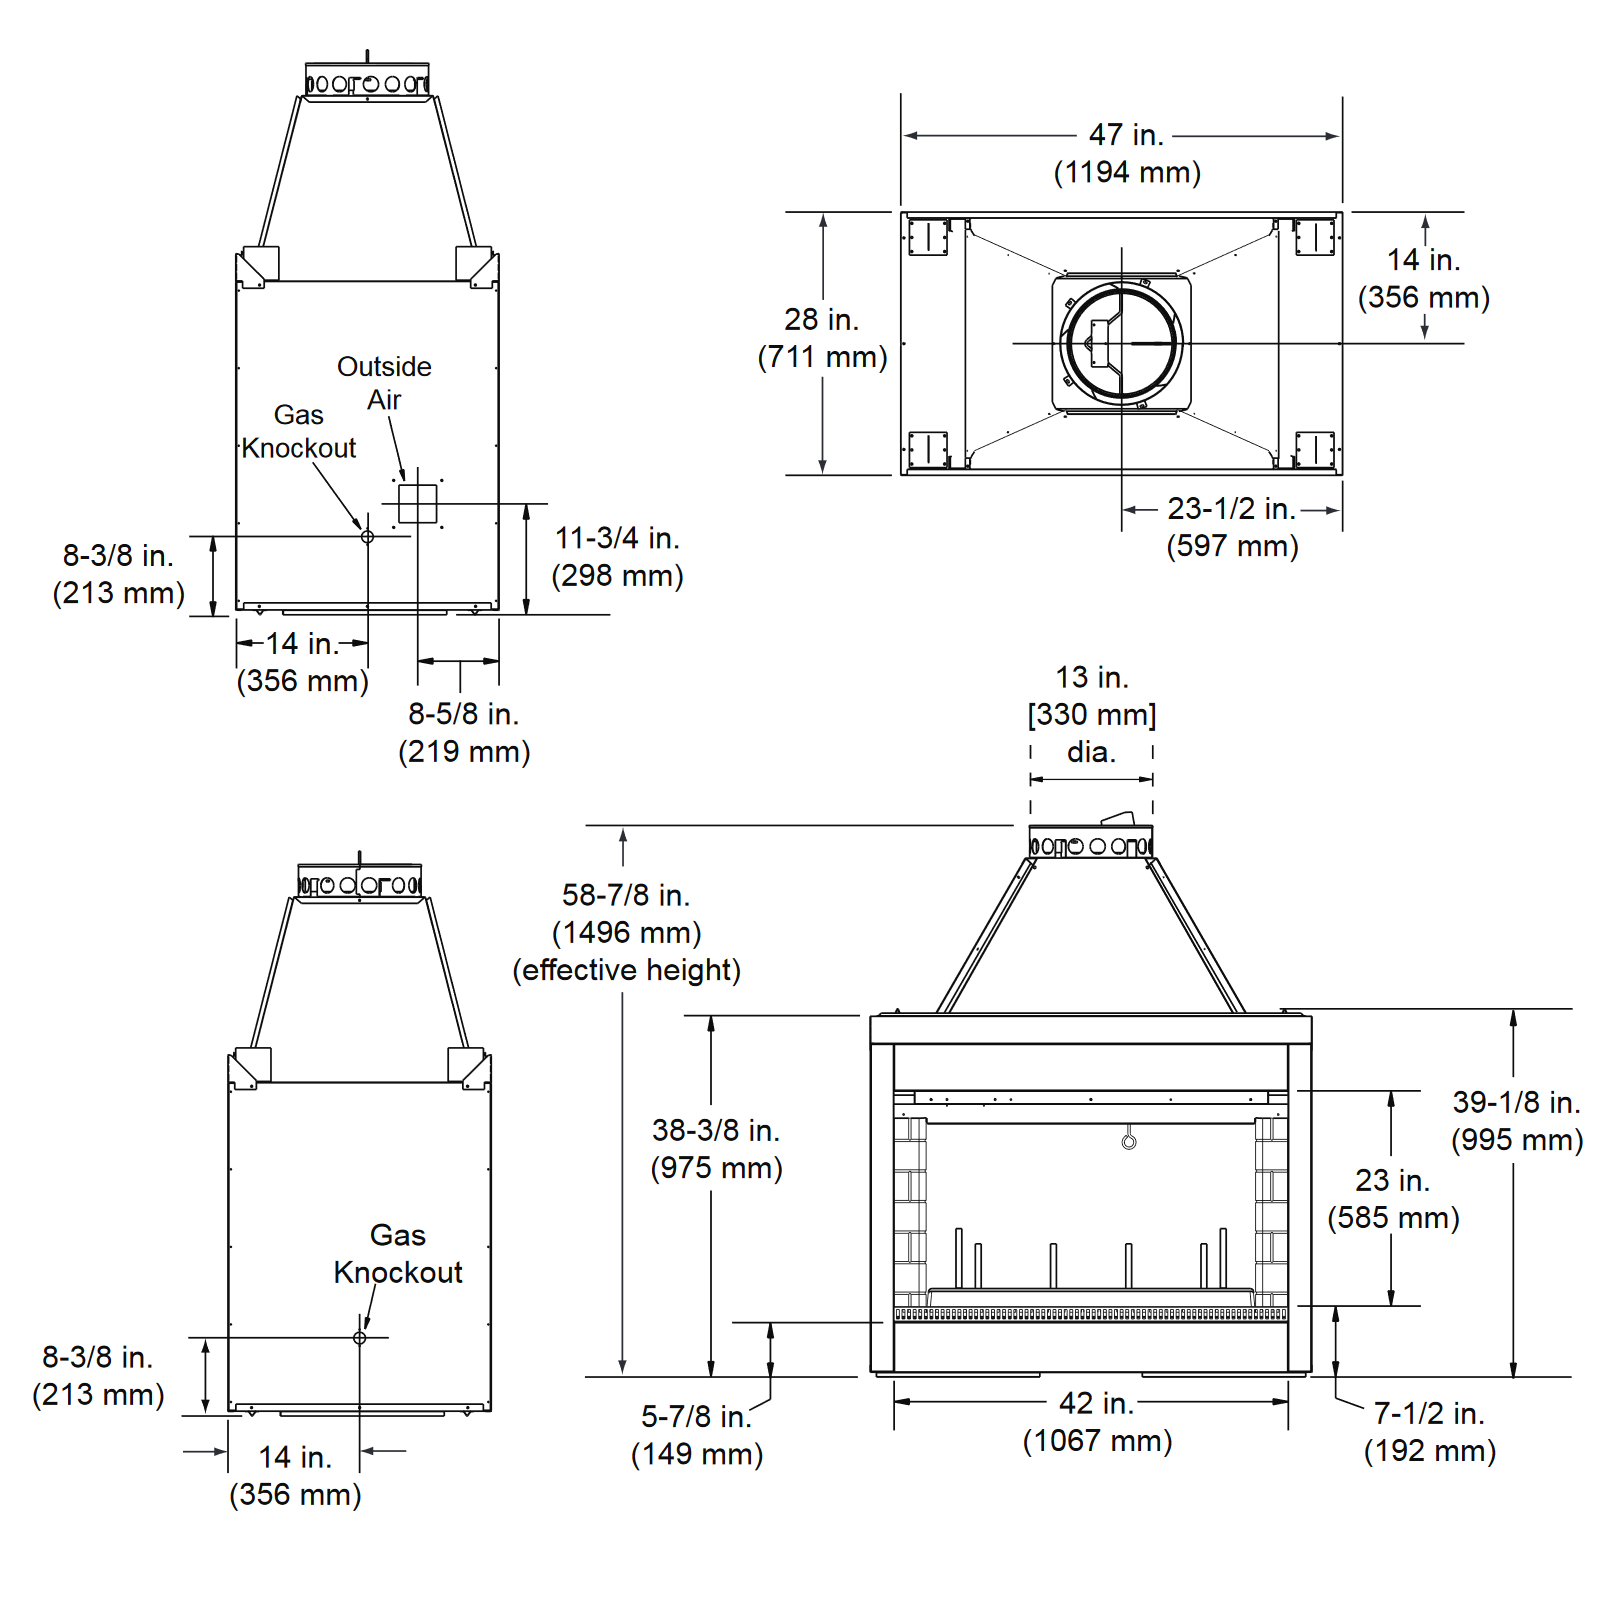 DSR42 Technical Drawing 1